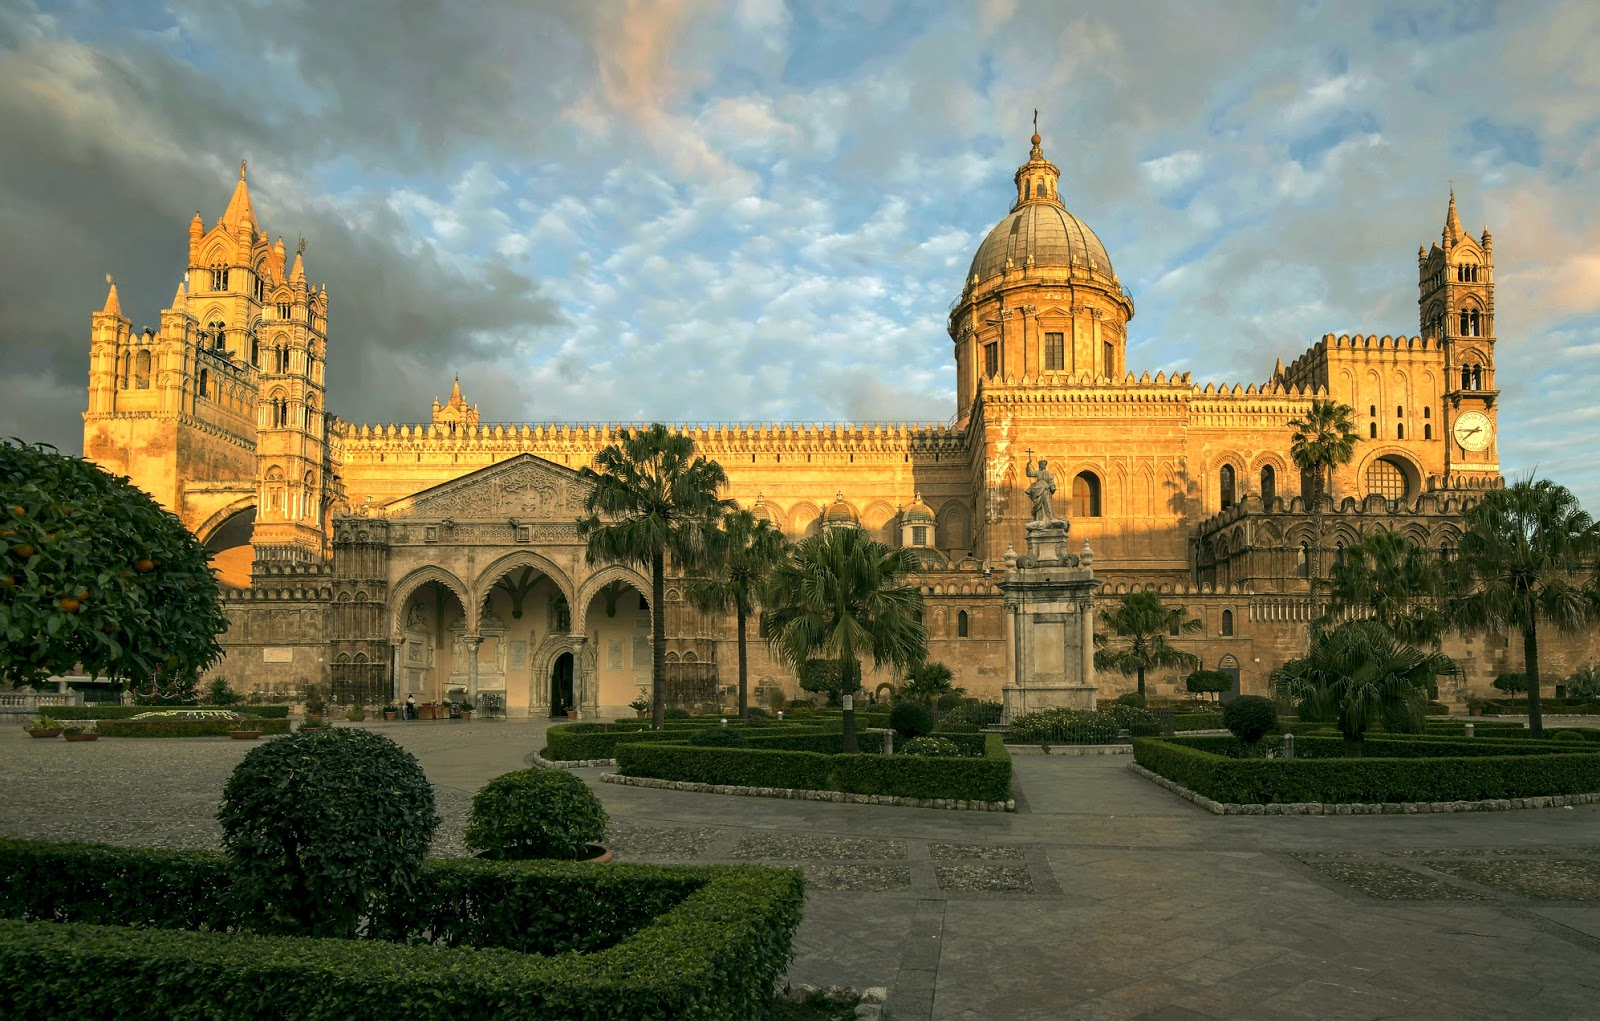 palermo italy tourist information - photo#15